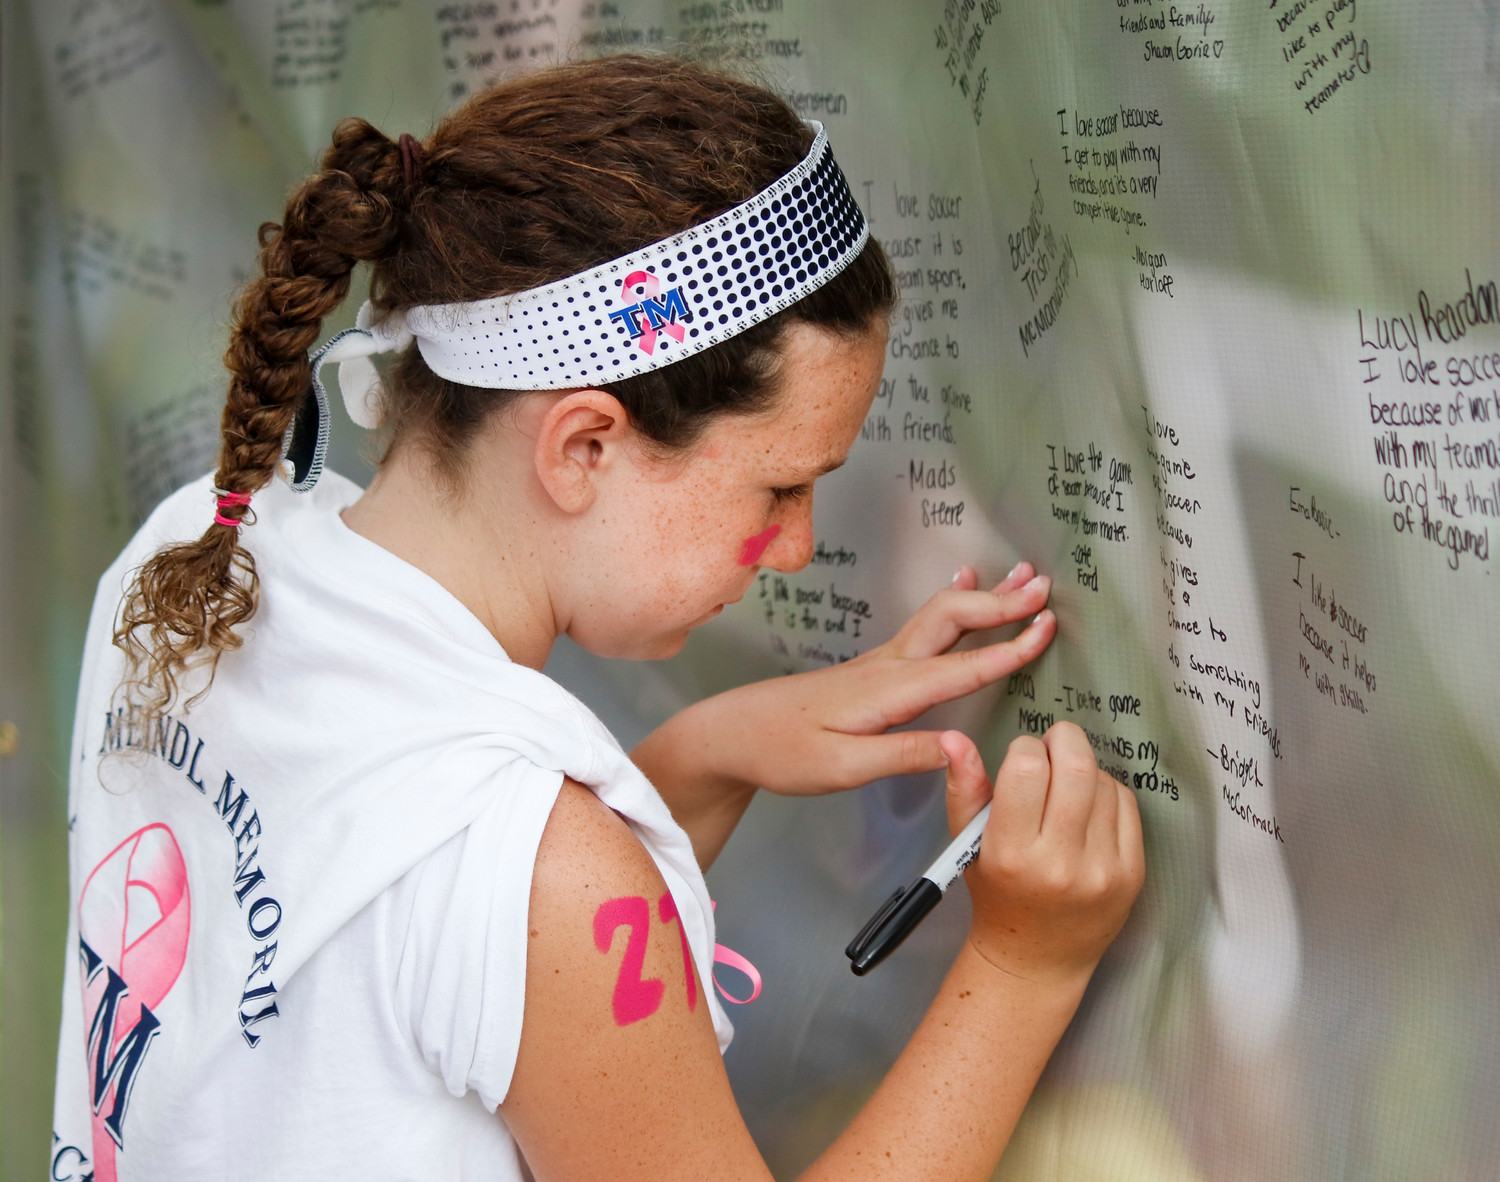 """I love the game because it was my mom's favorite, and it's my favorite sport too,"" Erica Meindl wrote on the ""Why I Love the Game"" banner."